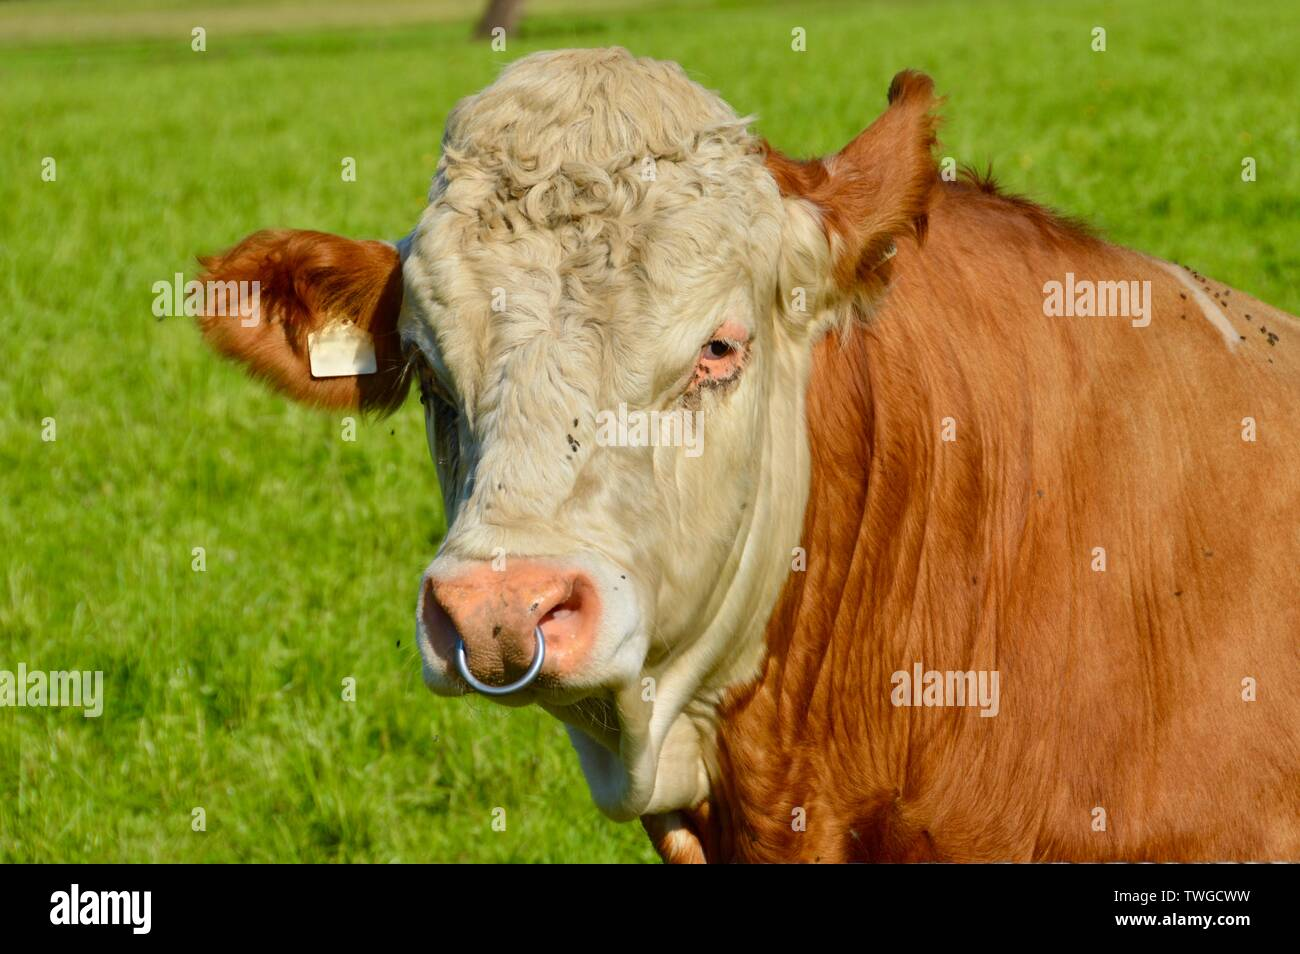 adolescent bull with nose ring companied by flys - Stock Image